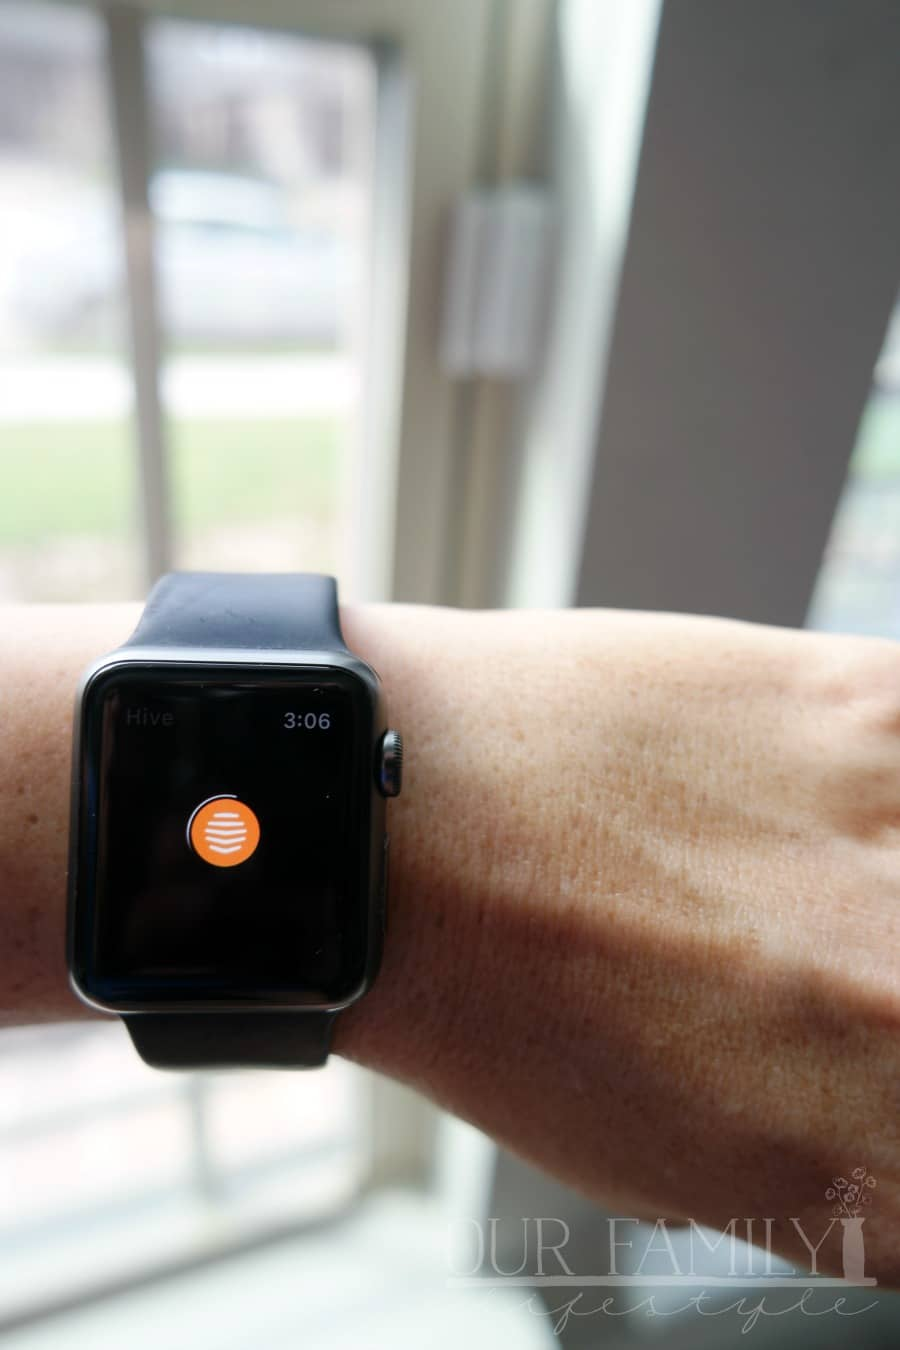 Hive Apple Watch App